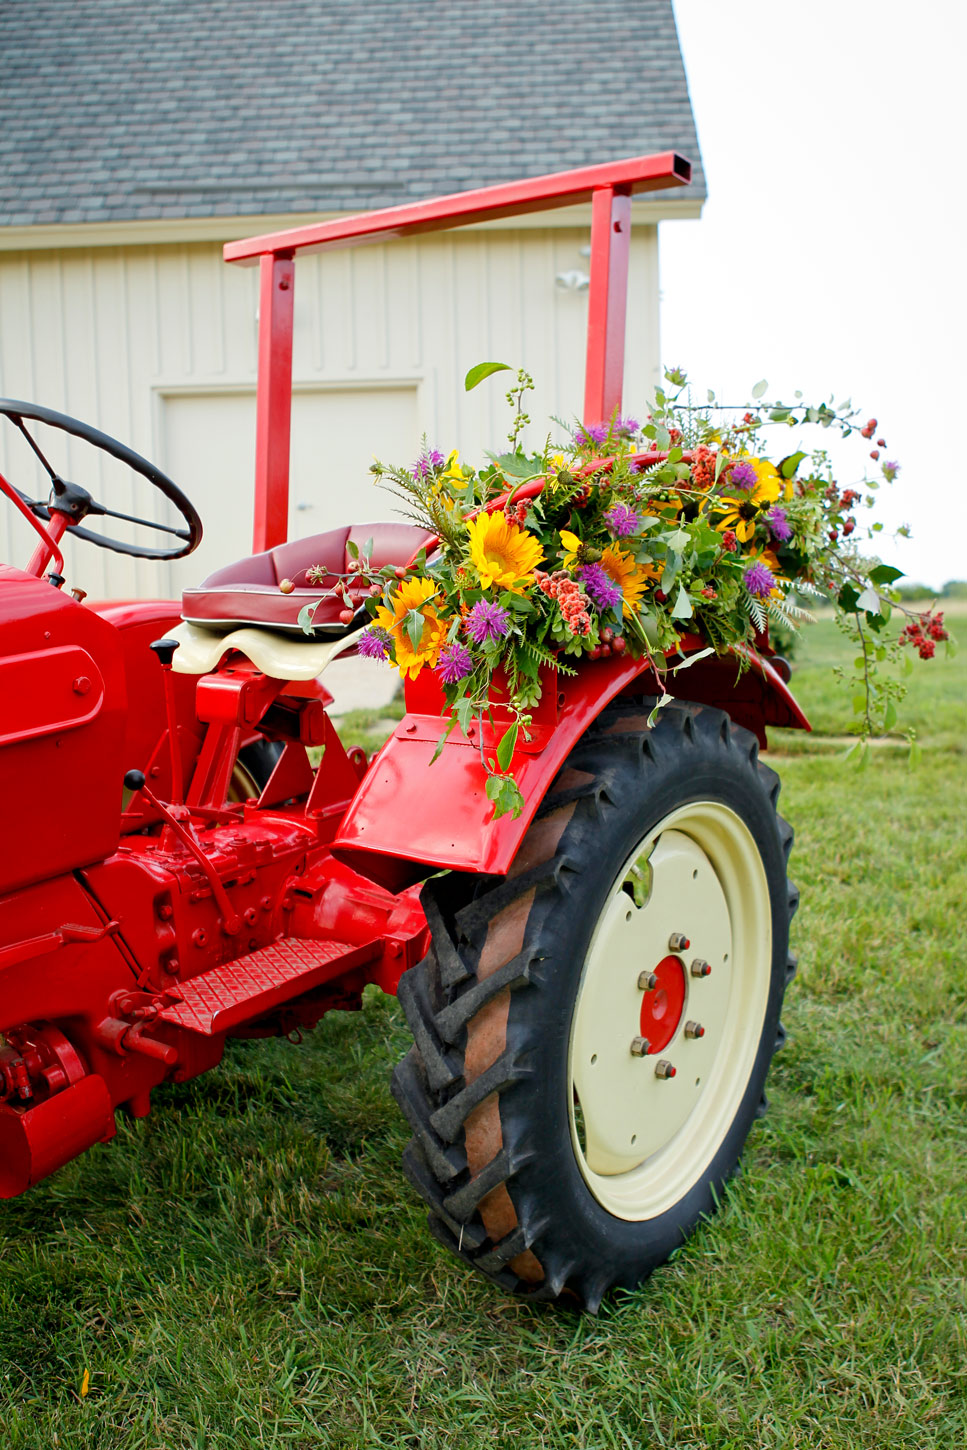 event-photographer-madison-wi-dane-county-gala-fundraiser-ruthie-hauge-photography-farm-to-table 14.jpg